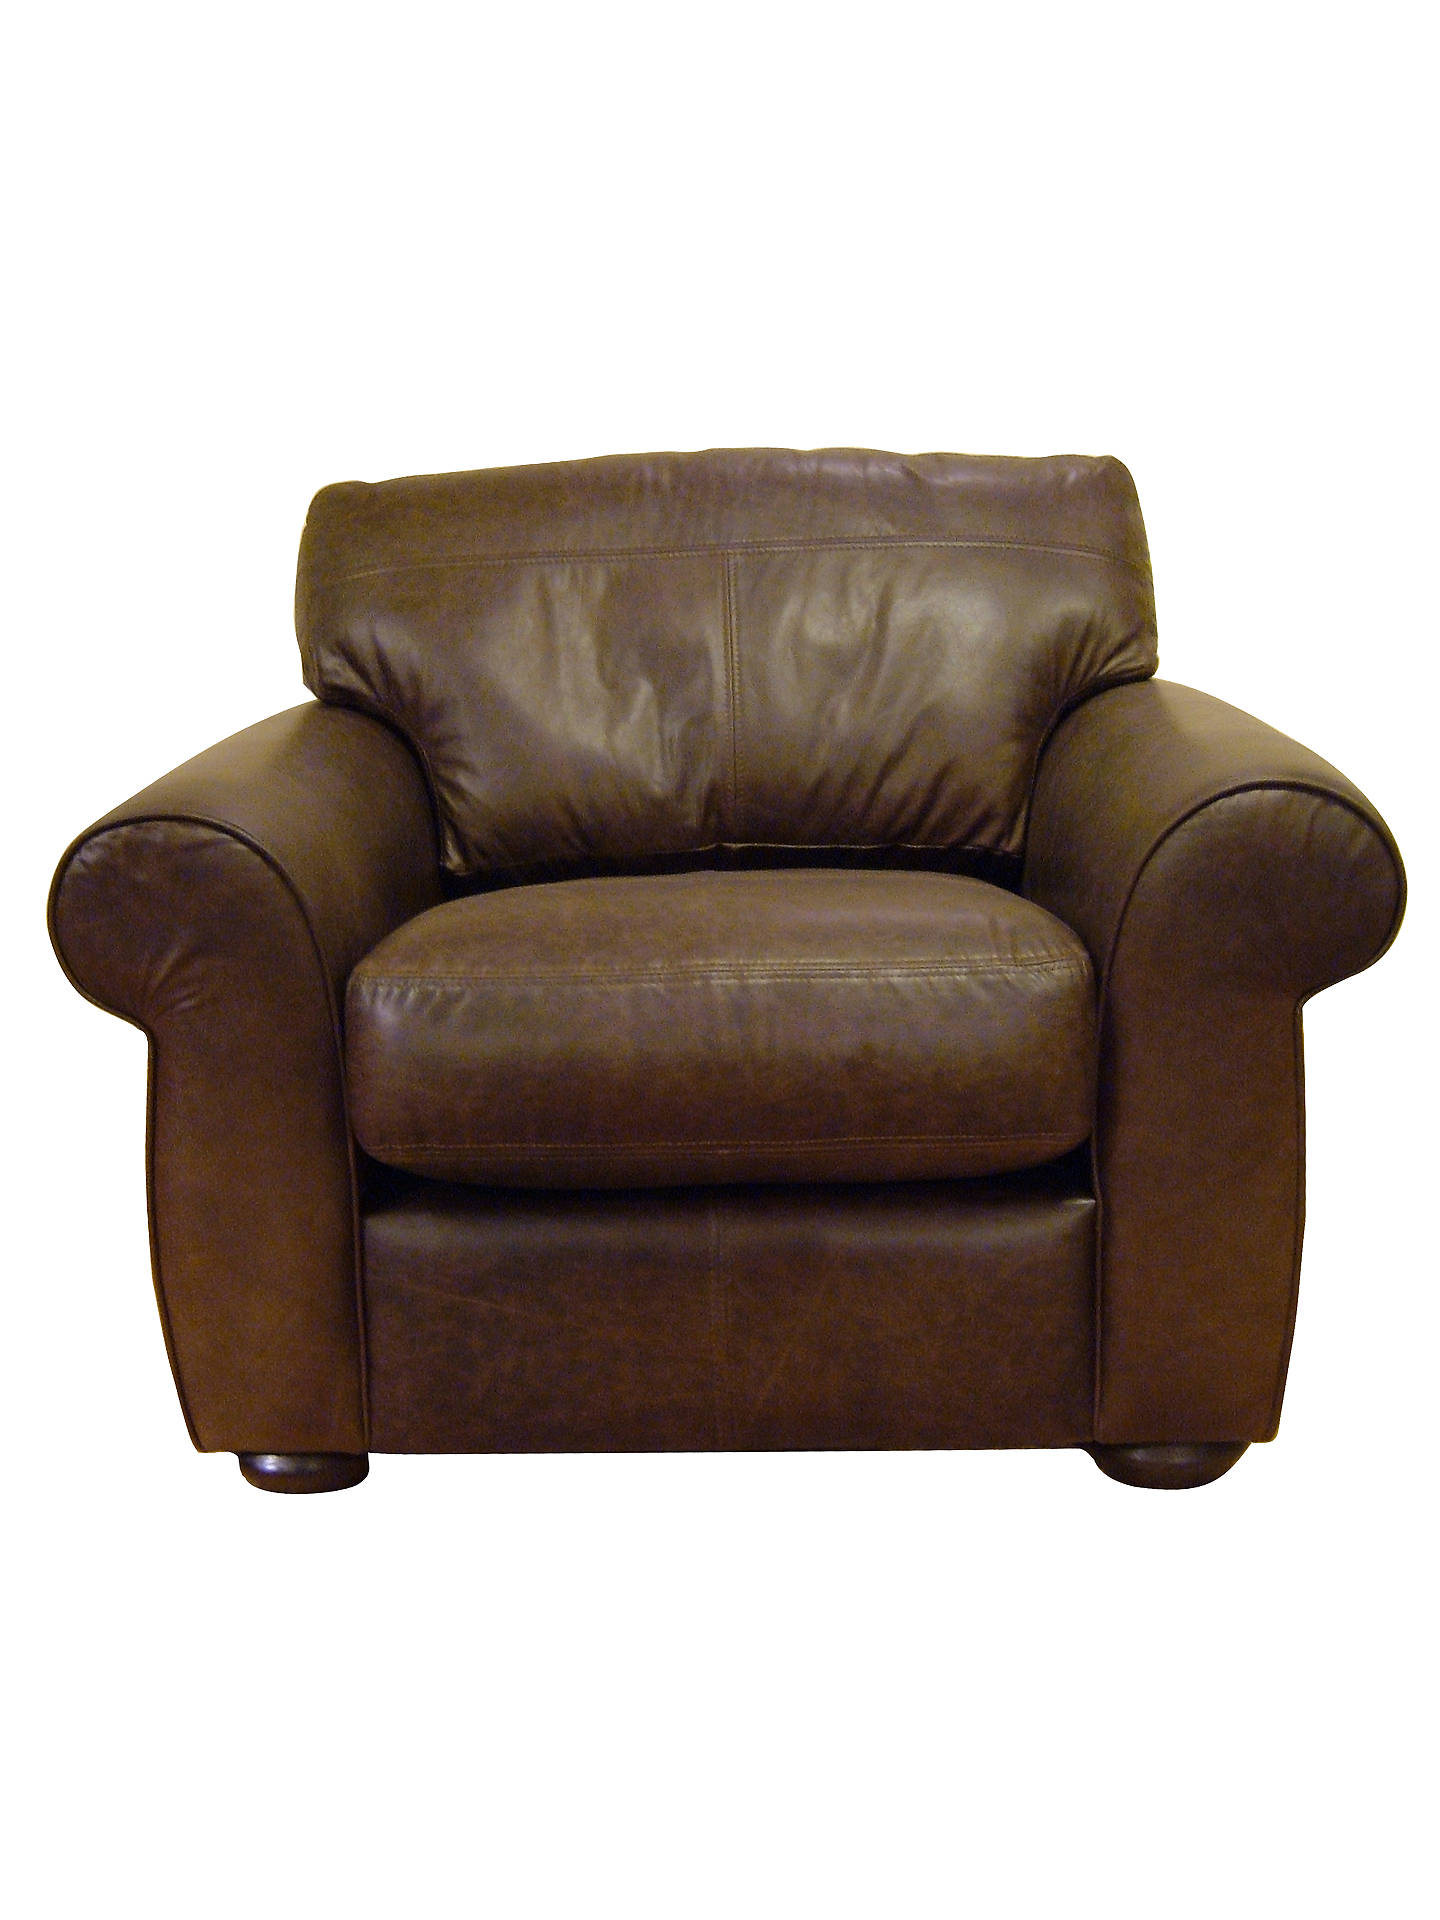 Buy John Lewis Madison Leather Chair Online at johnlewis.com